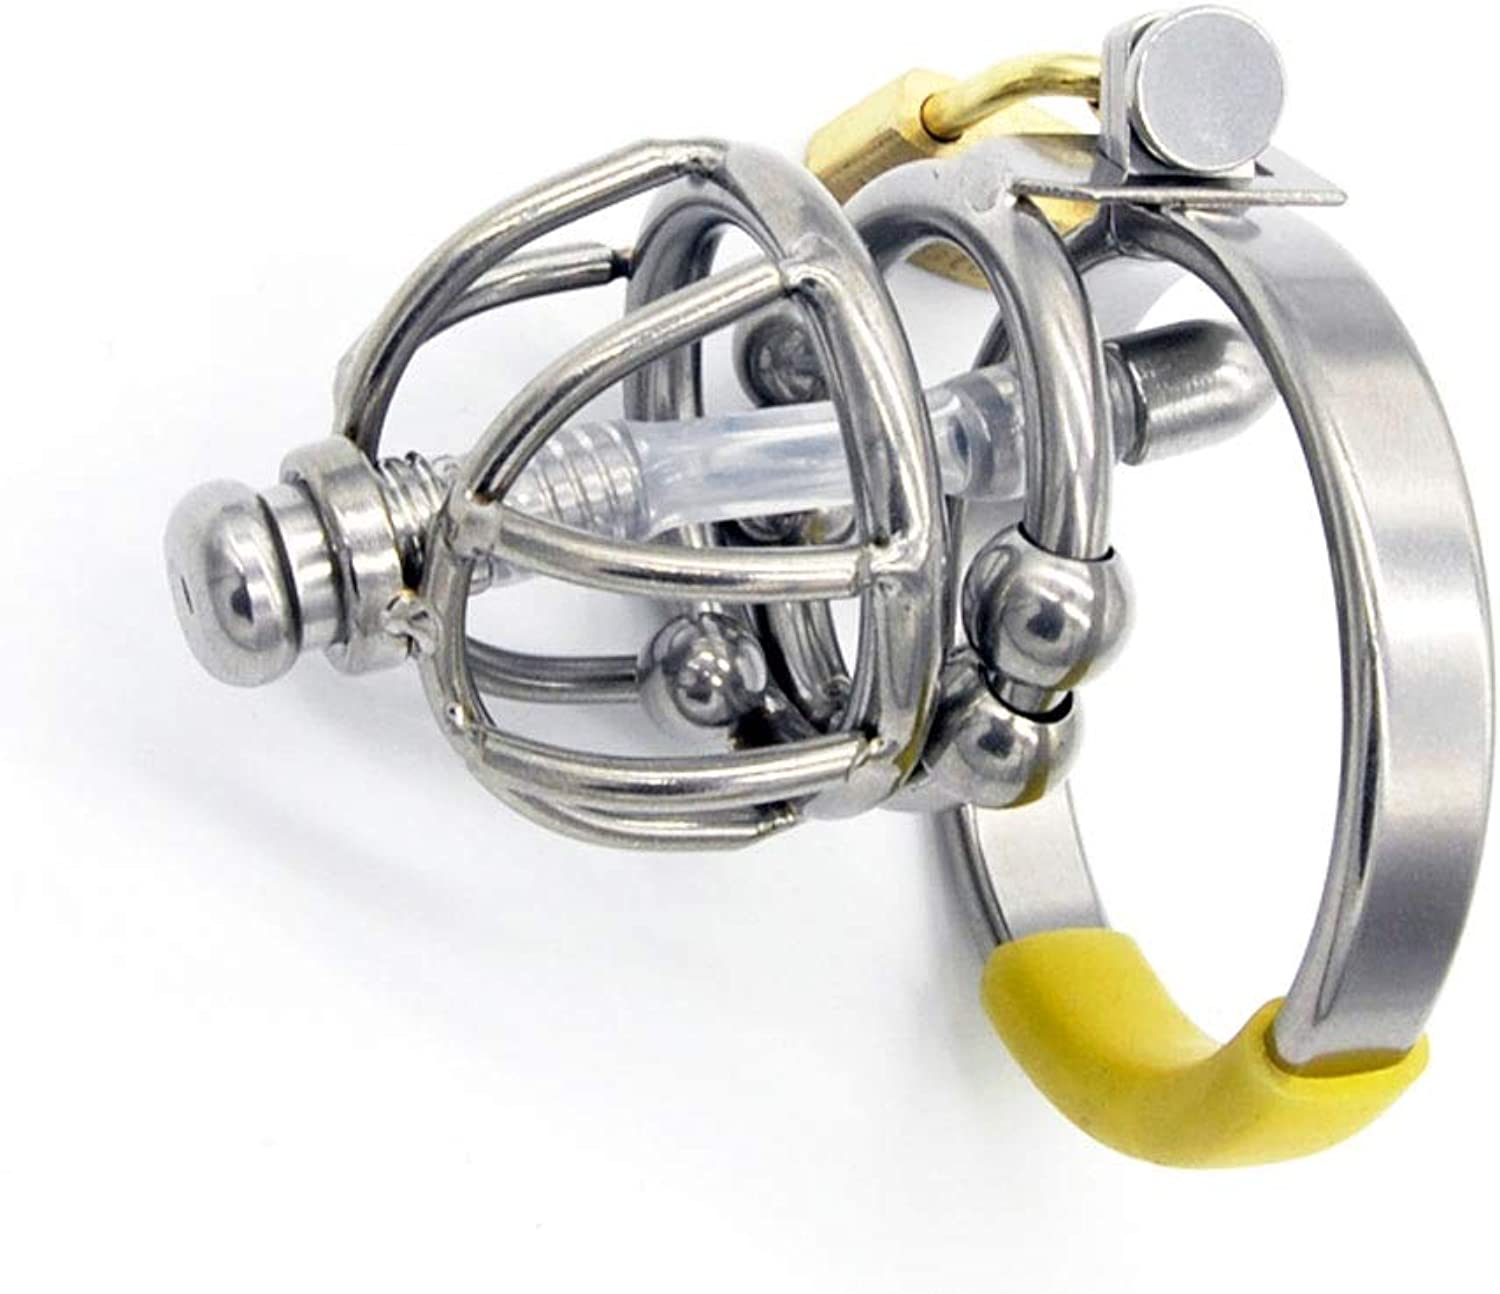 Hollowed Out Stainless Steel Chastity Device with Massage Beads Chastity Lock Cage Comfortable and Breathable